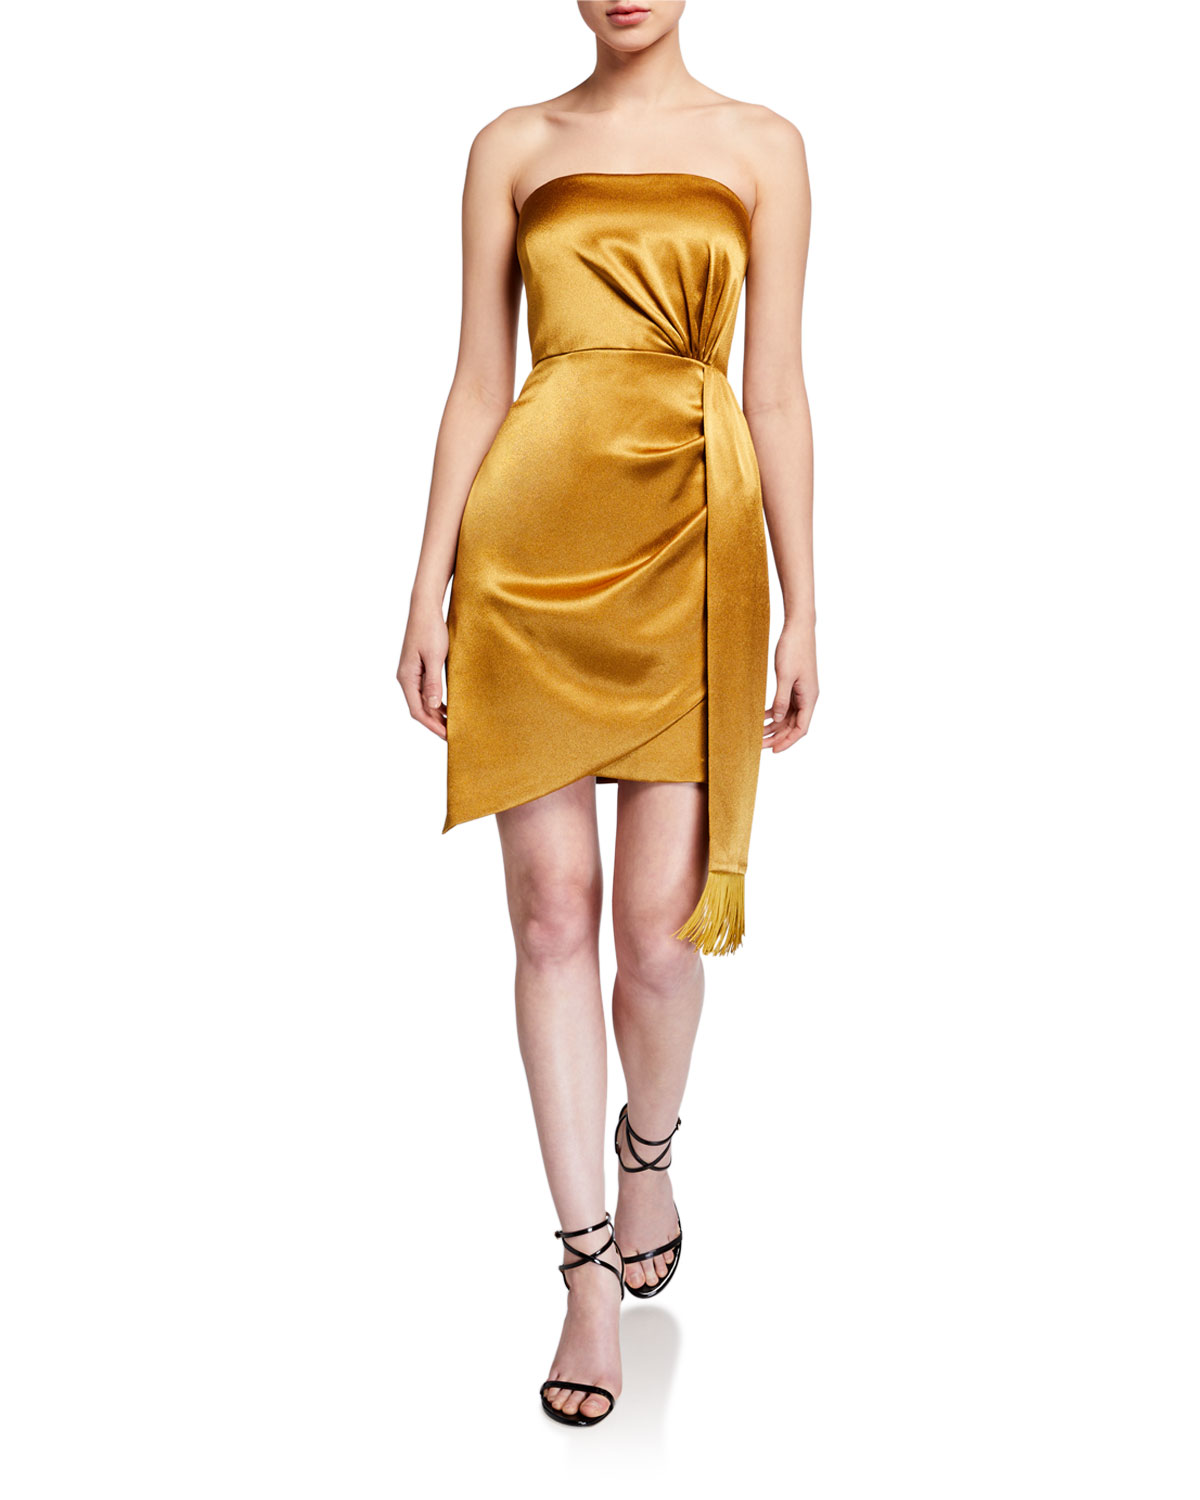 Aidan by Aidan Mattox Strapless Liquid Satin Mini Cocktail Dress w/ Side Drape Detail